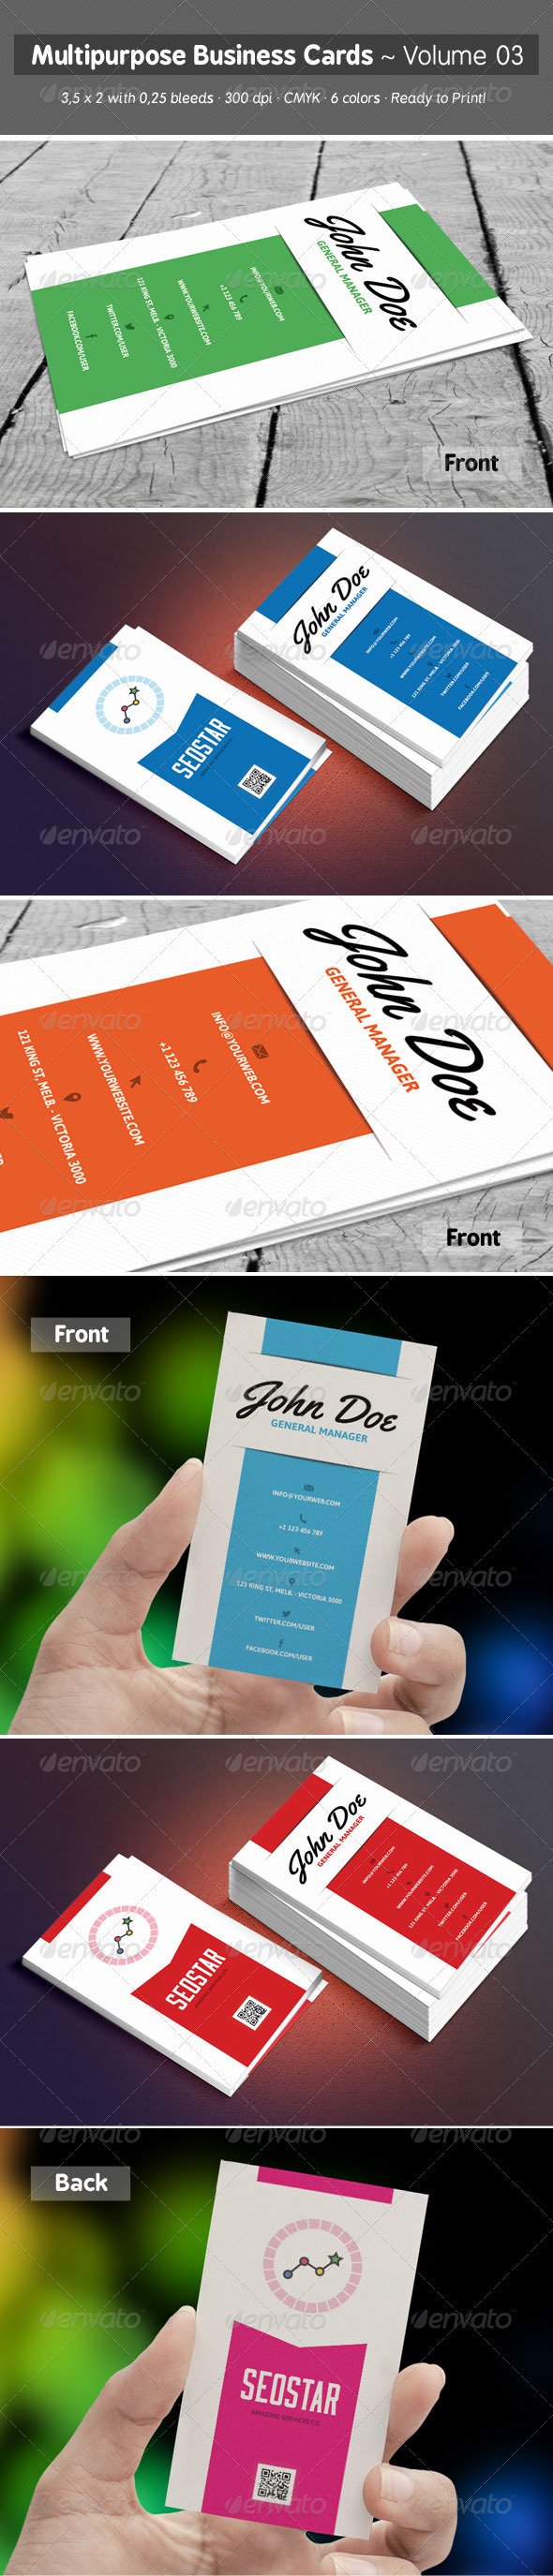 GraphicRiver Multipurpose Business Cards Volume 03 7341471